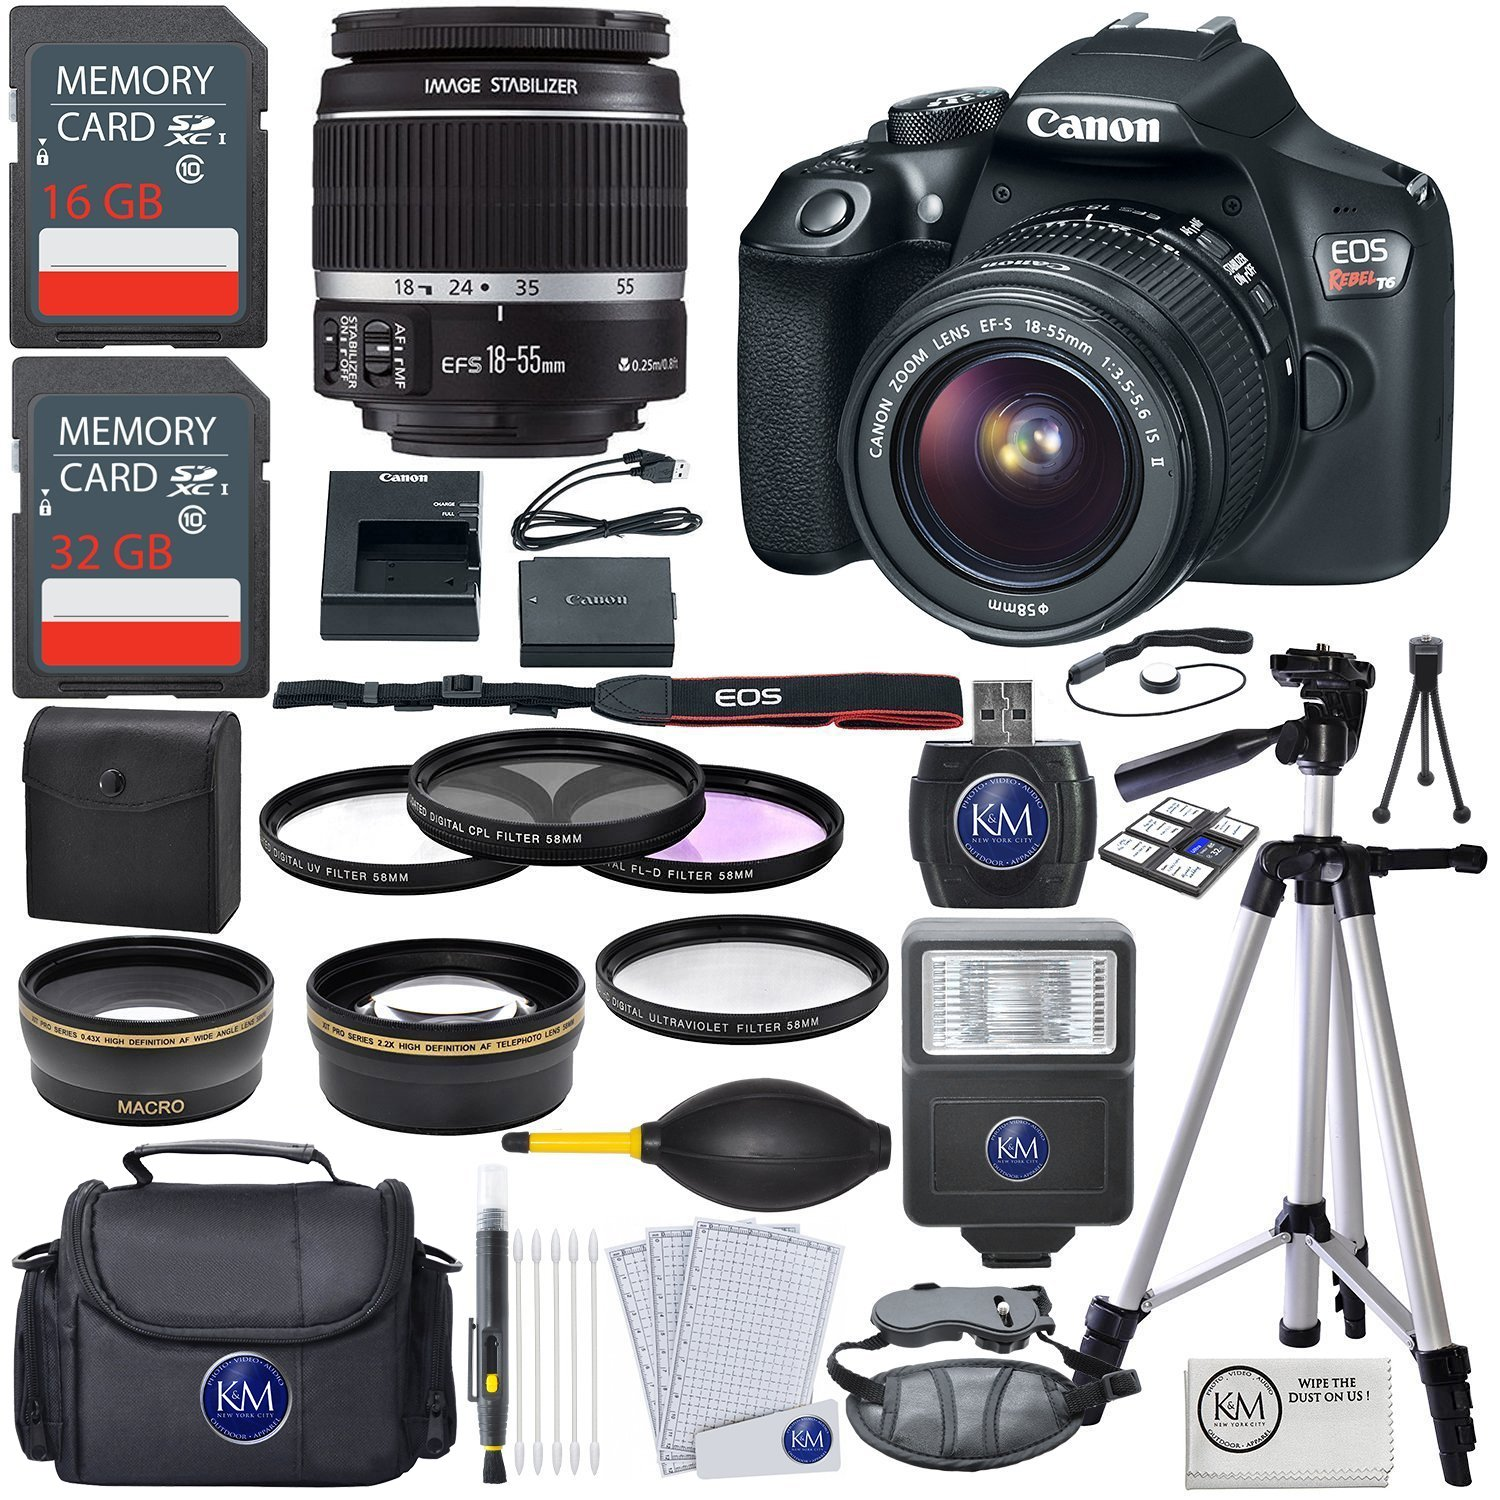 Canon EOS Rebel T6 DSLR Camera w/ EF-S 18-55mm Lens + Premium Accessory Bundle by Canon